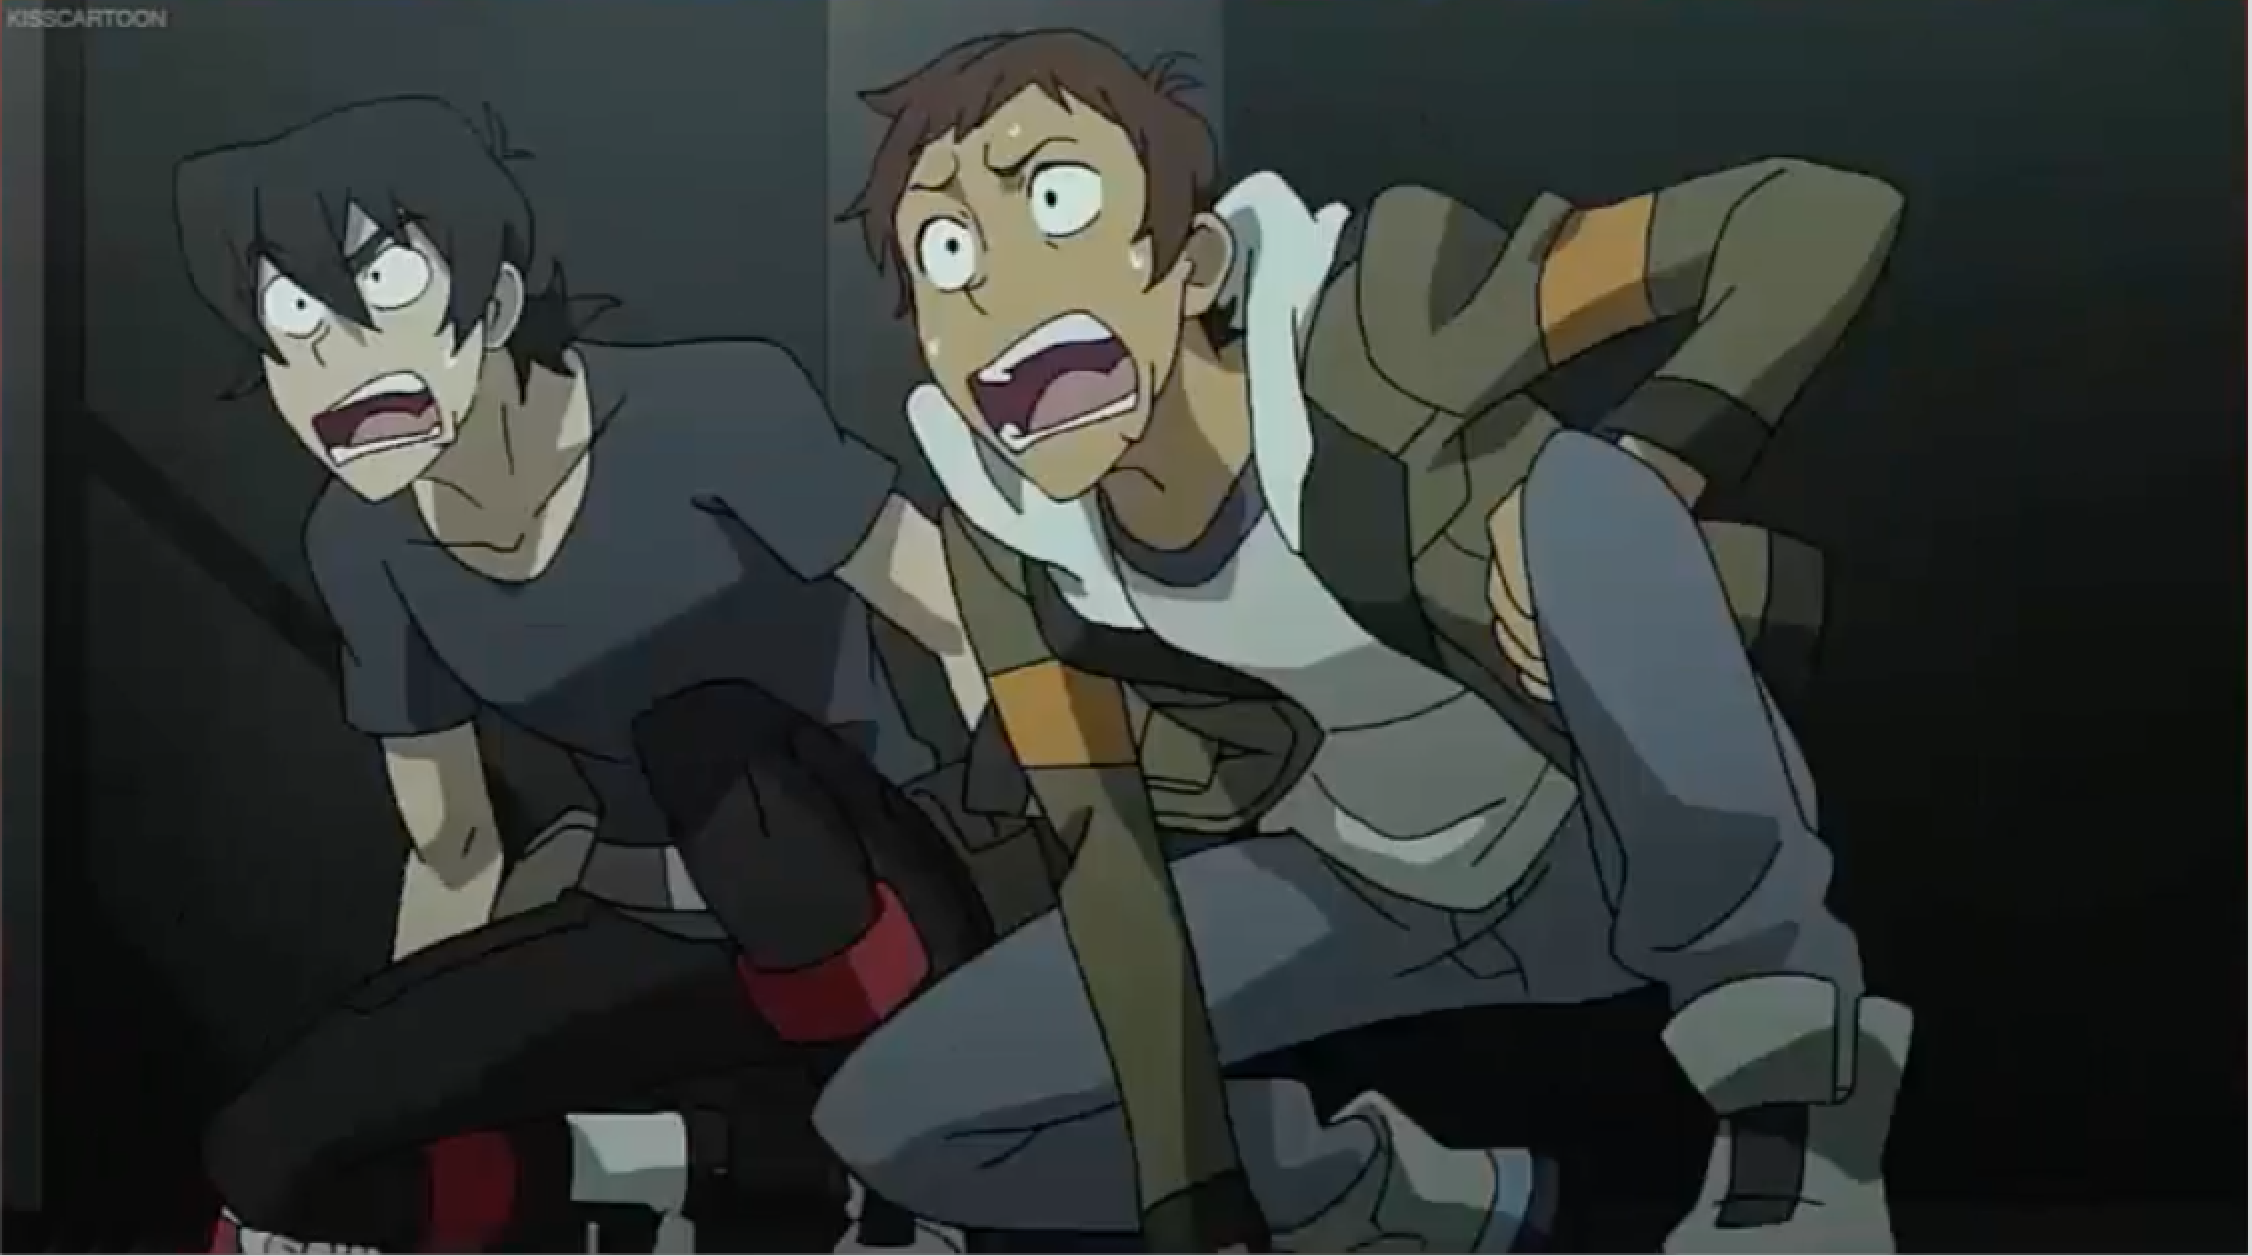 Keith And Lance Screaming And Ran For Their Lives From